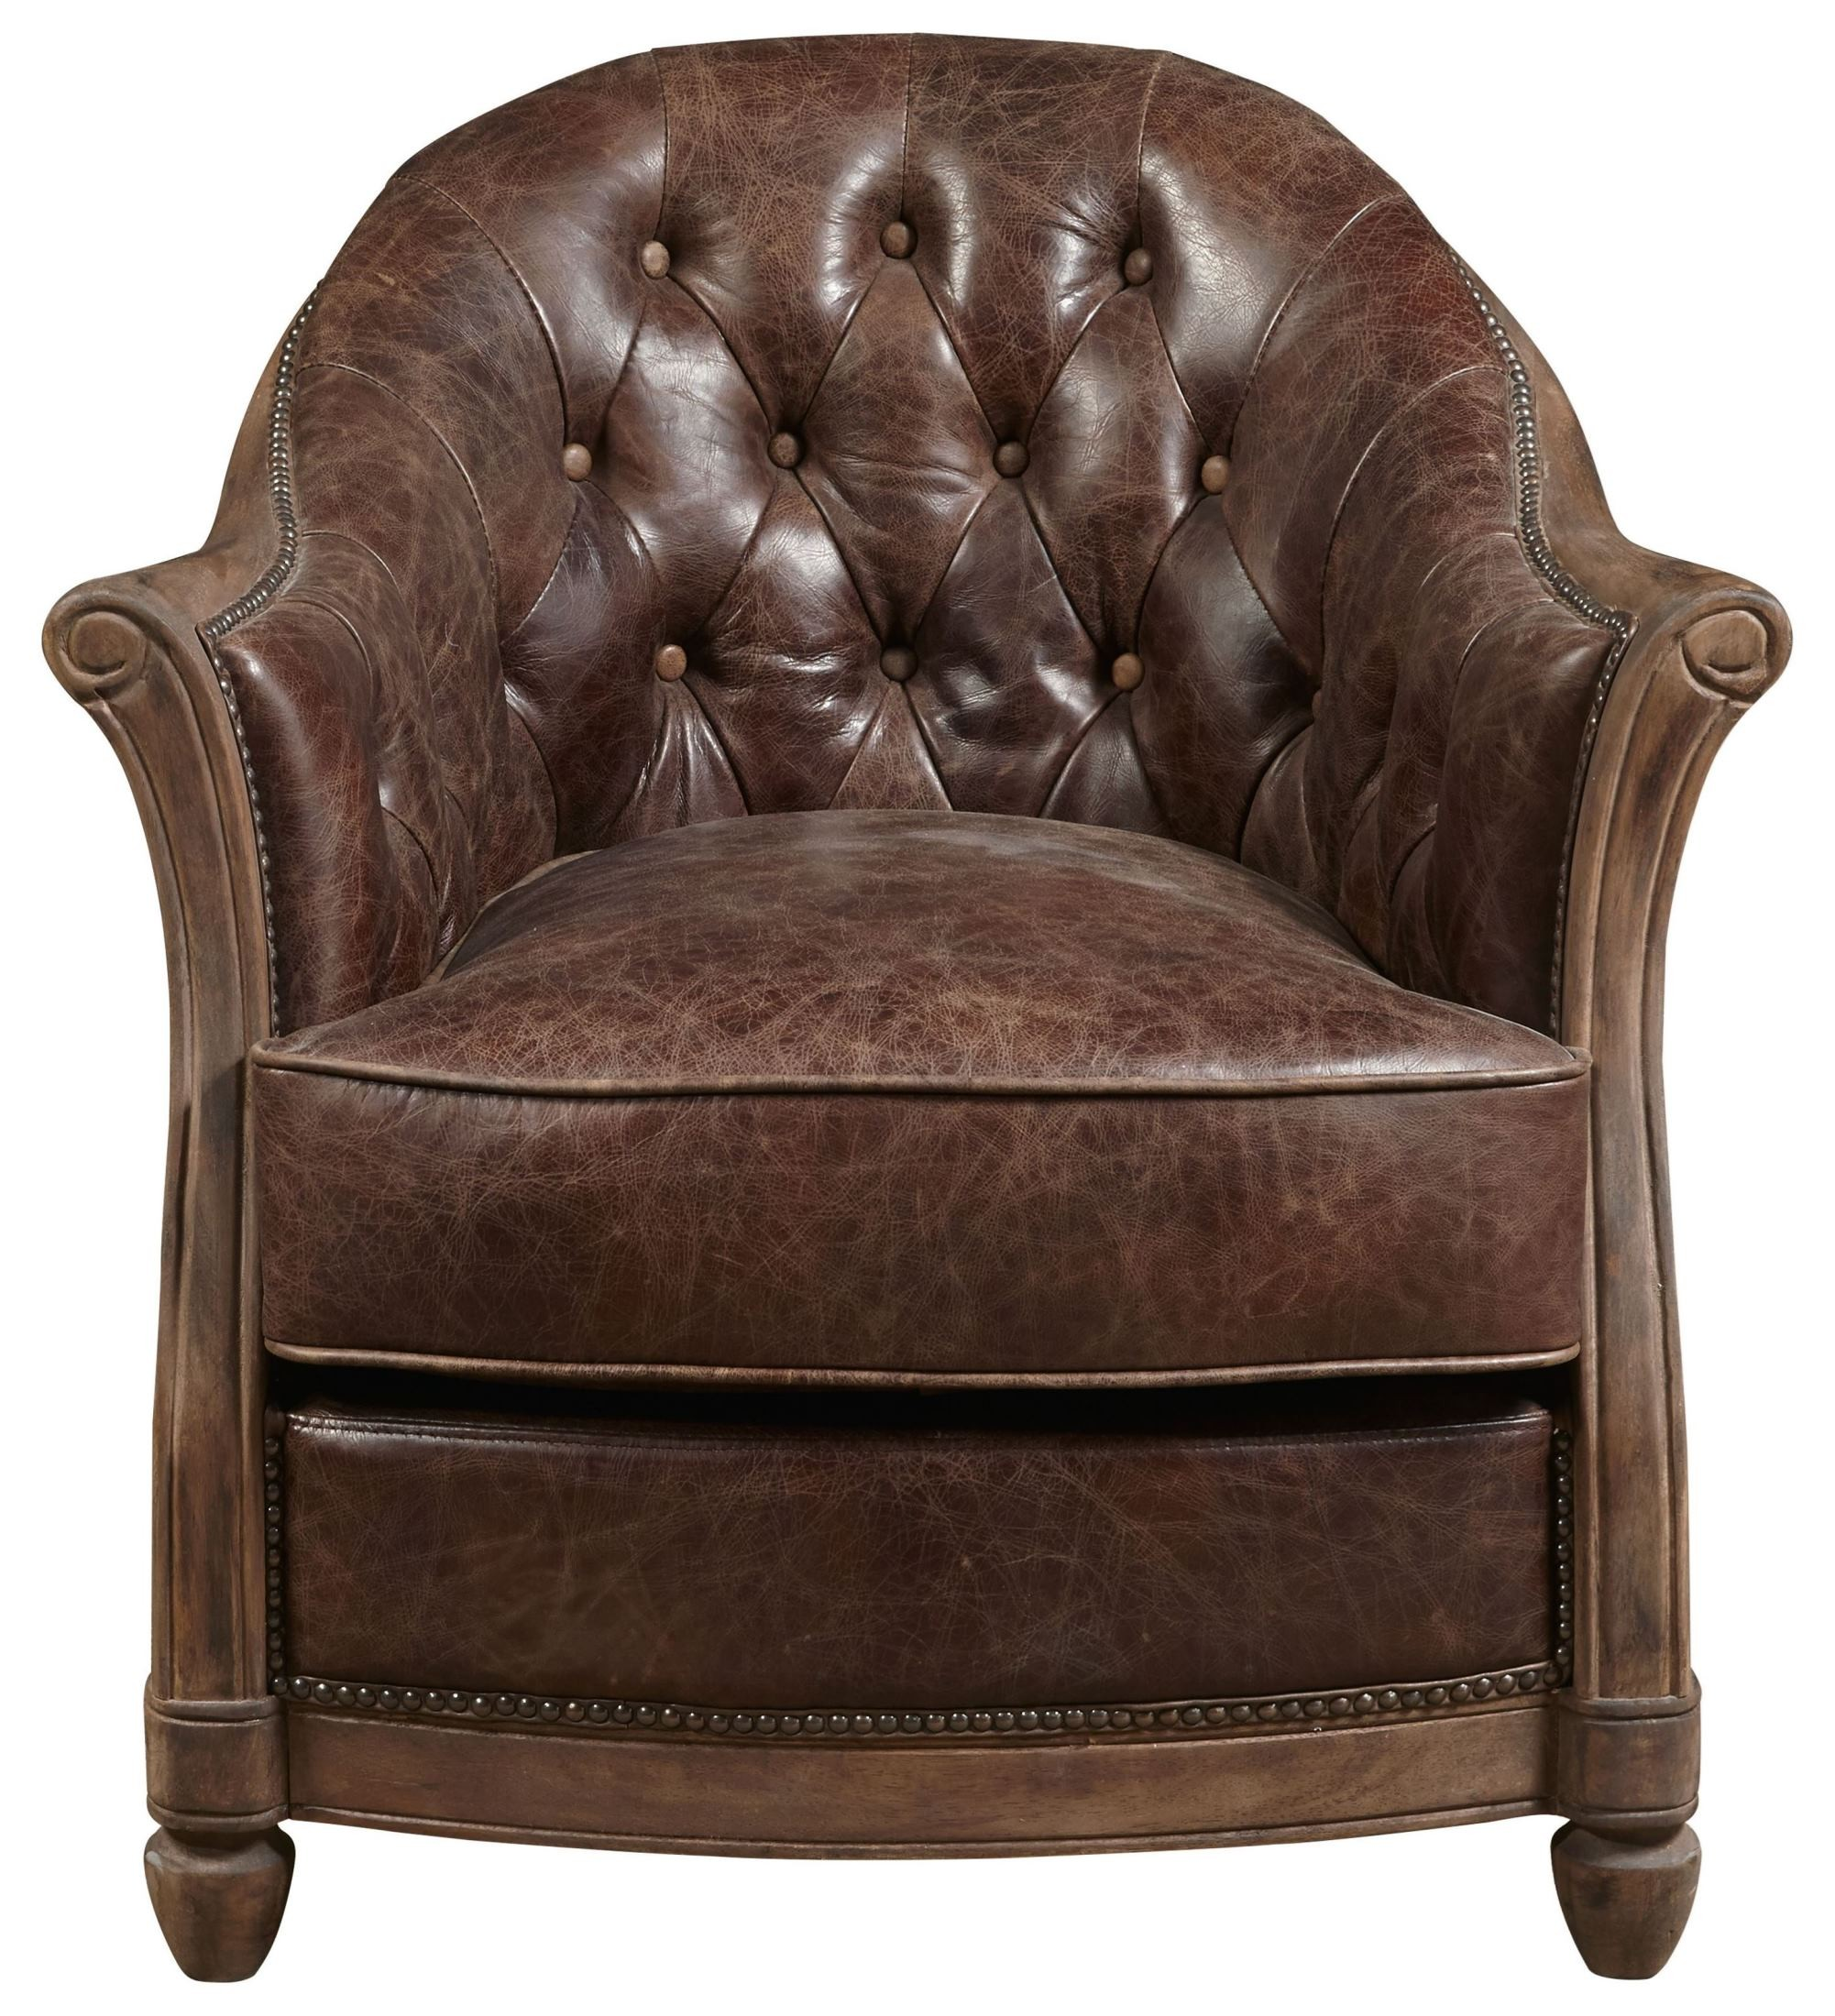 Amron Brown Leather Accent Chair Accent Chairs Brown: Andrew Brown Leather Accent Chair